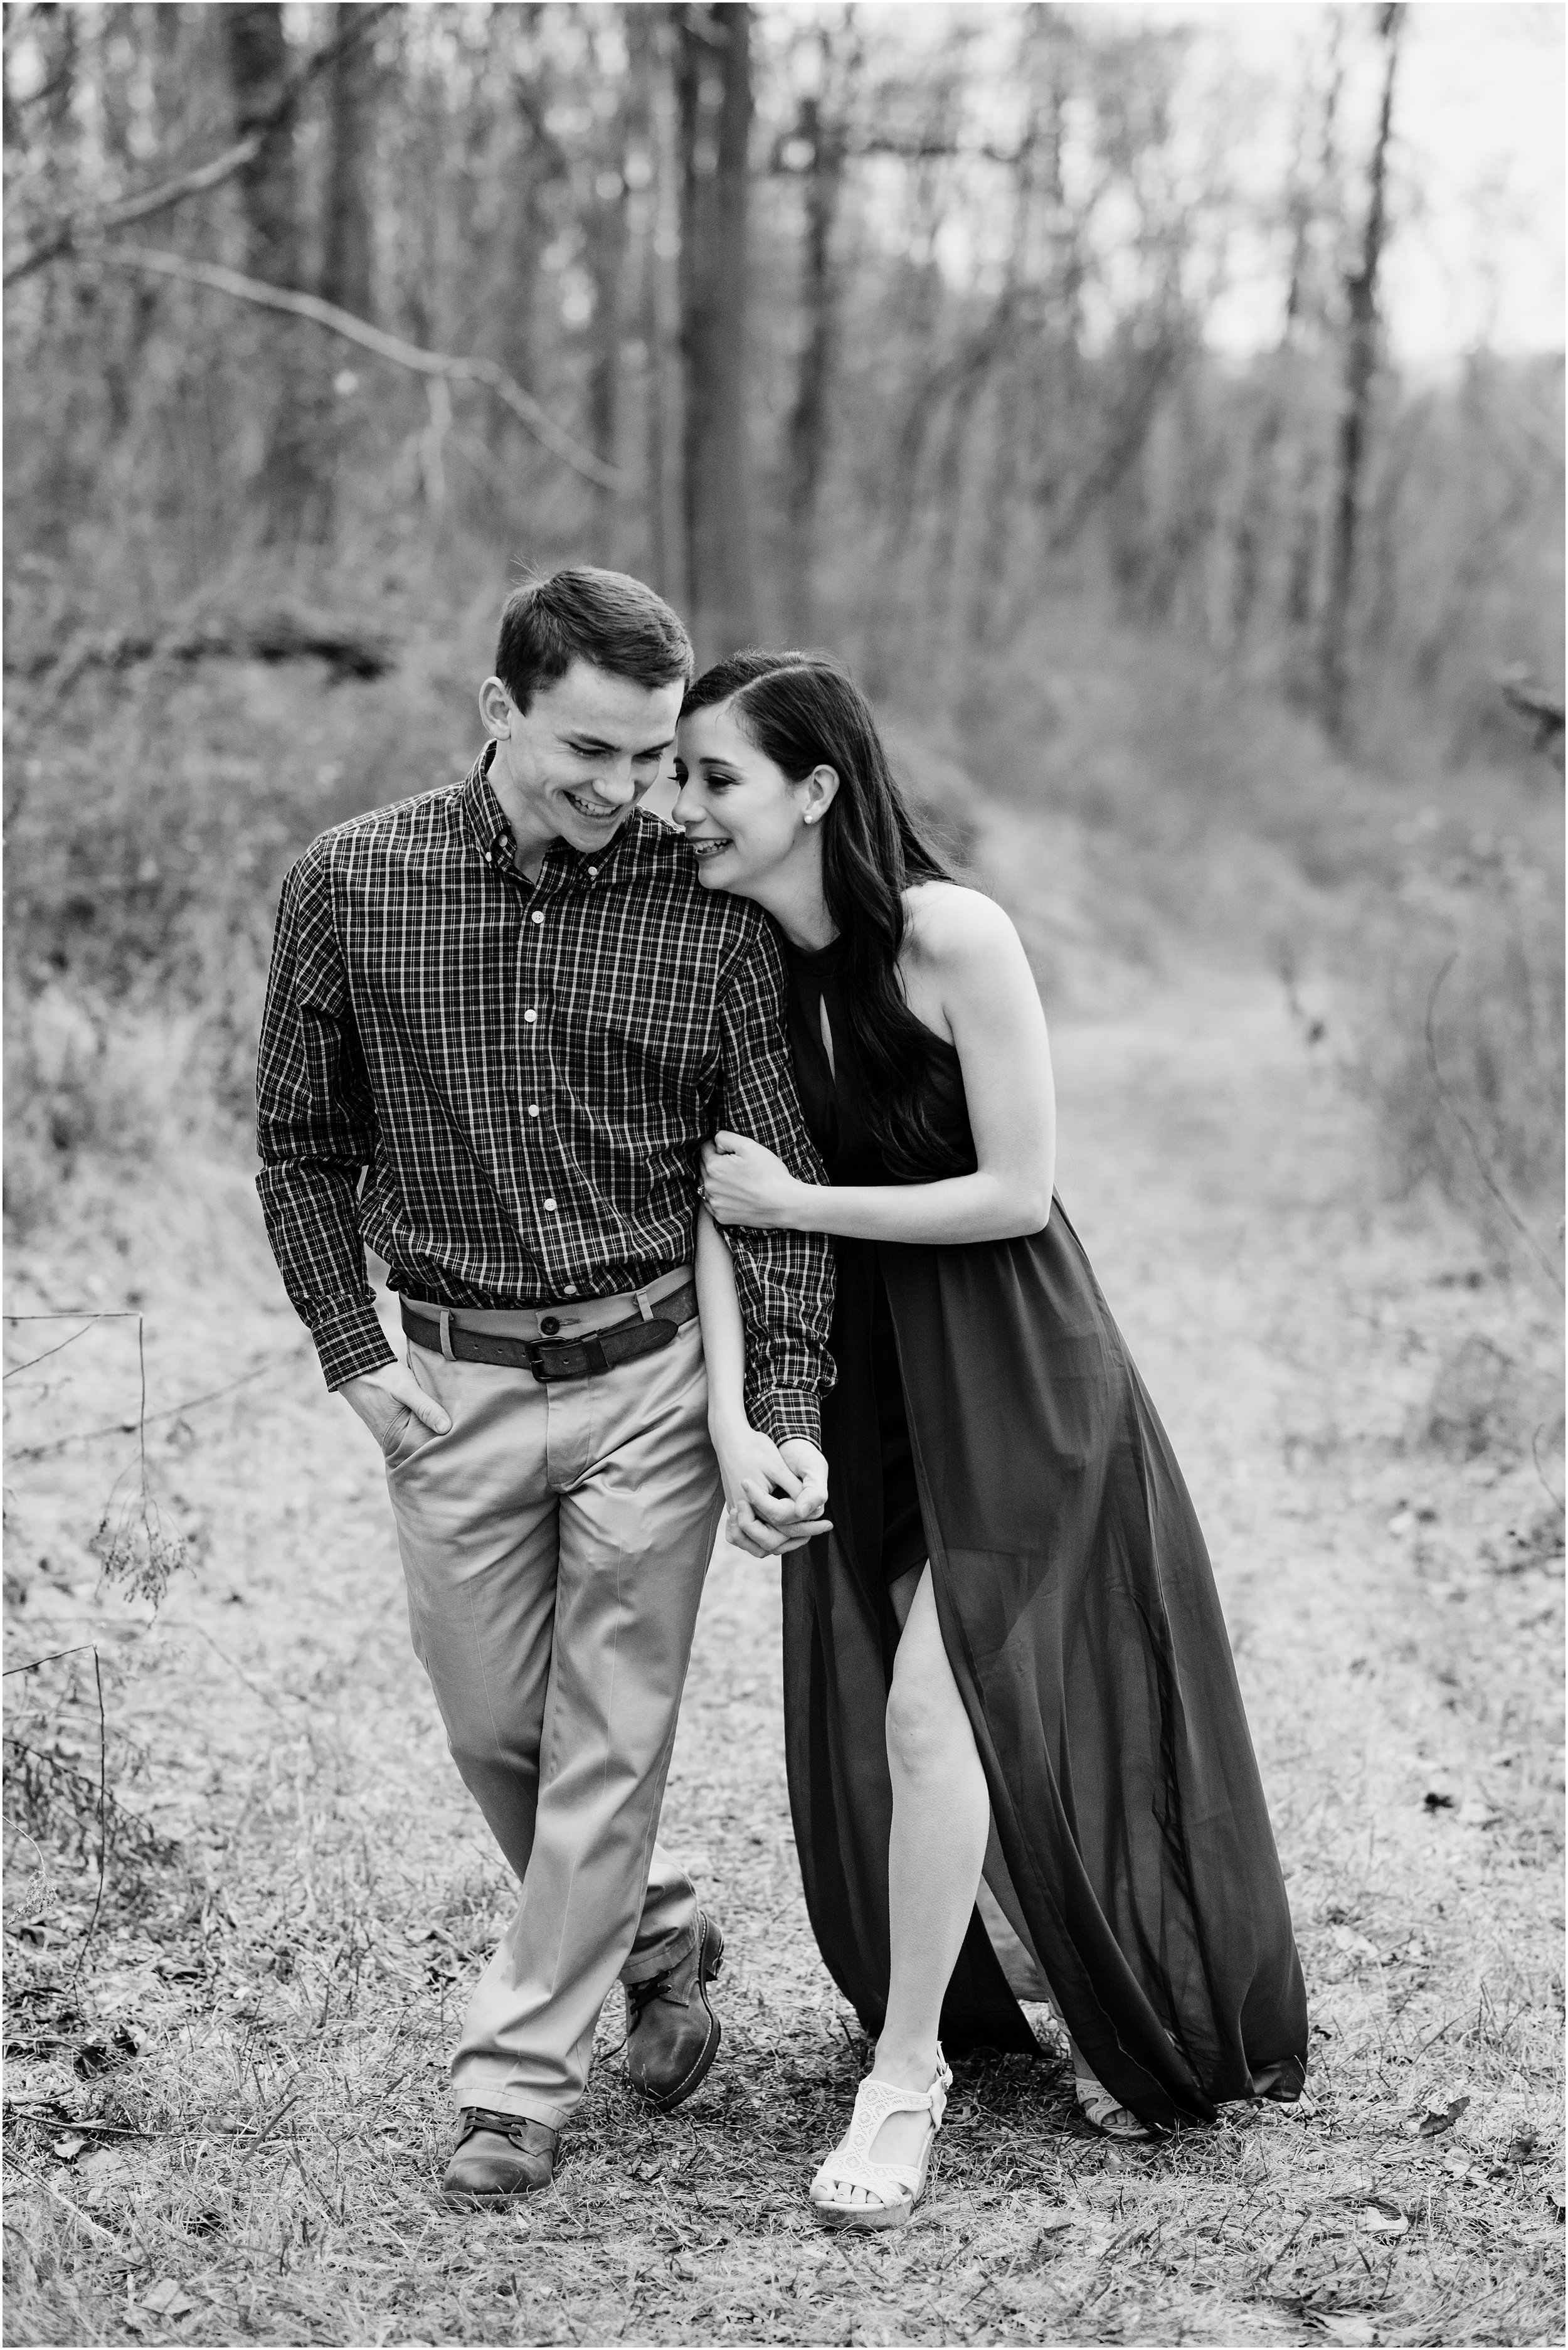 hannah leigh photography winter overlook engagement session lancaster PA_2648.jpg